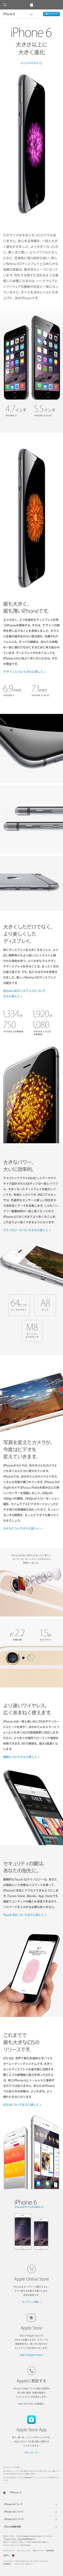 http://www.apple.com/jp/iphone-6/